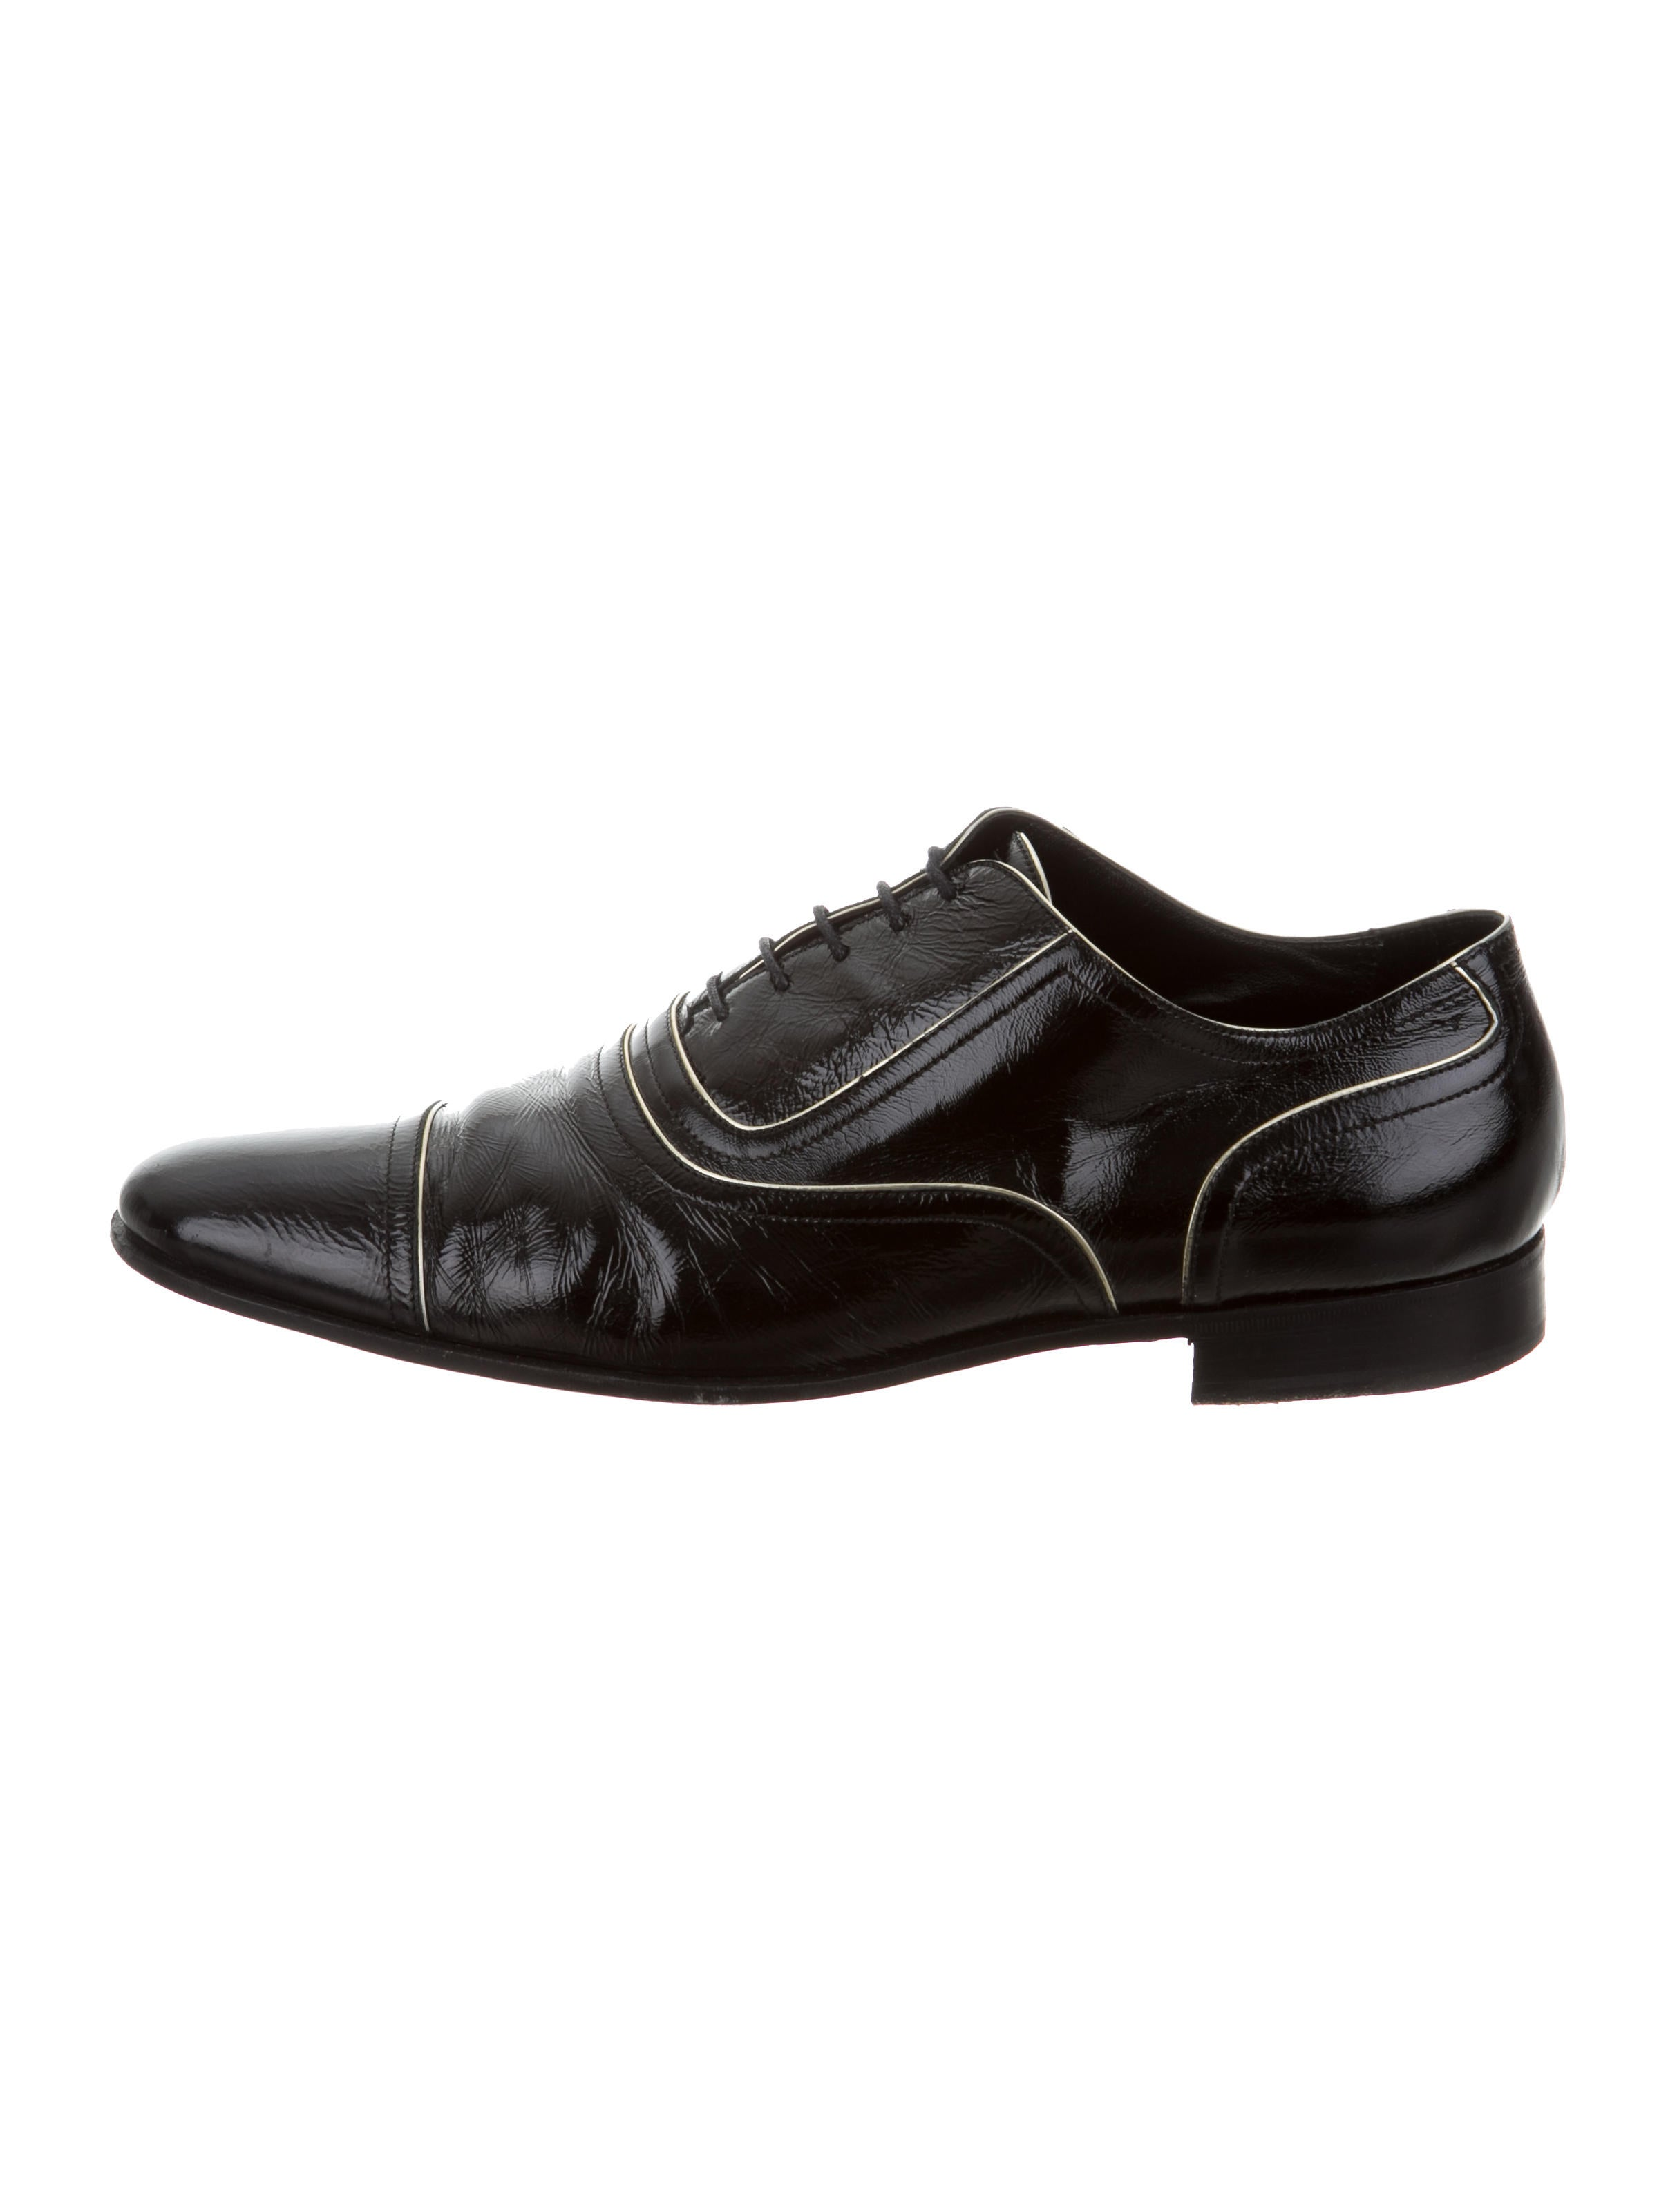 pierre hardy patent leather oxfords shoes pie24542 the realreal. Black Bedroom Furniture Sets. Home Design Ideas